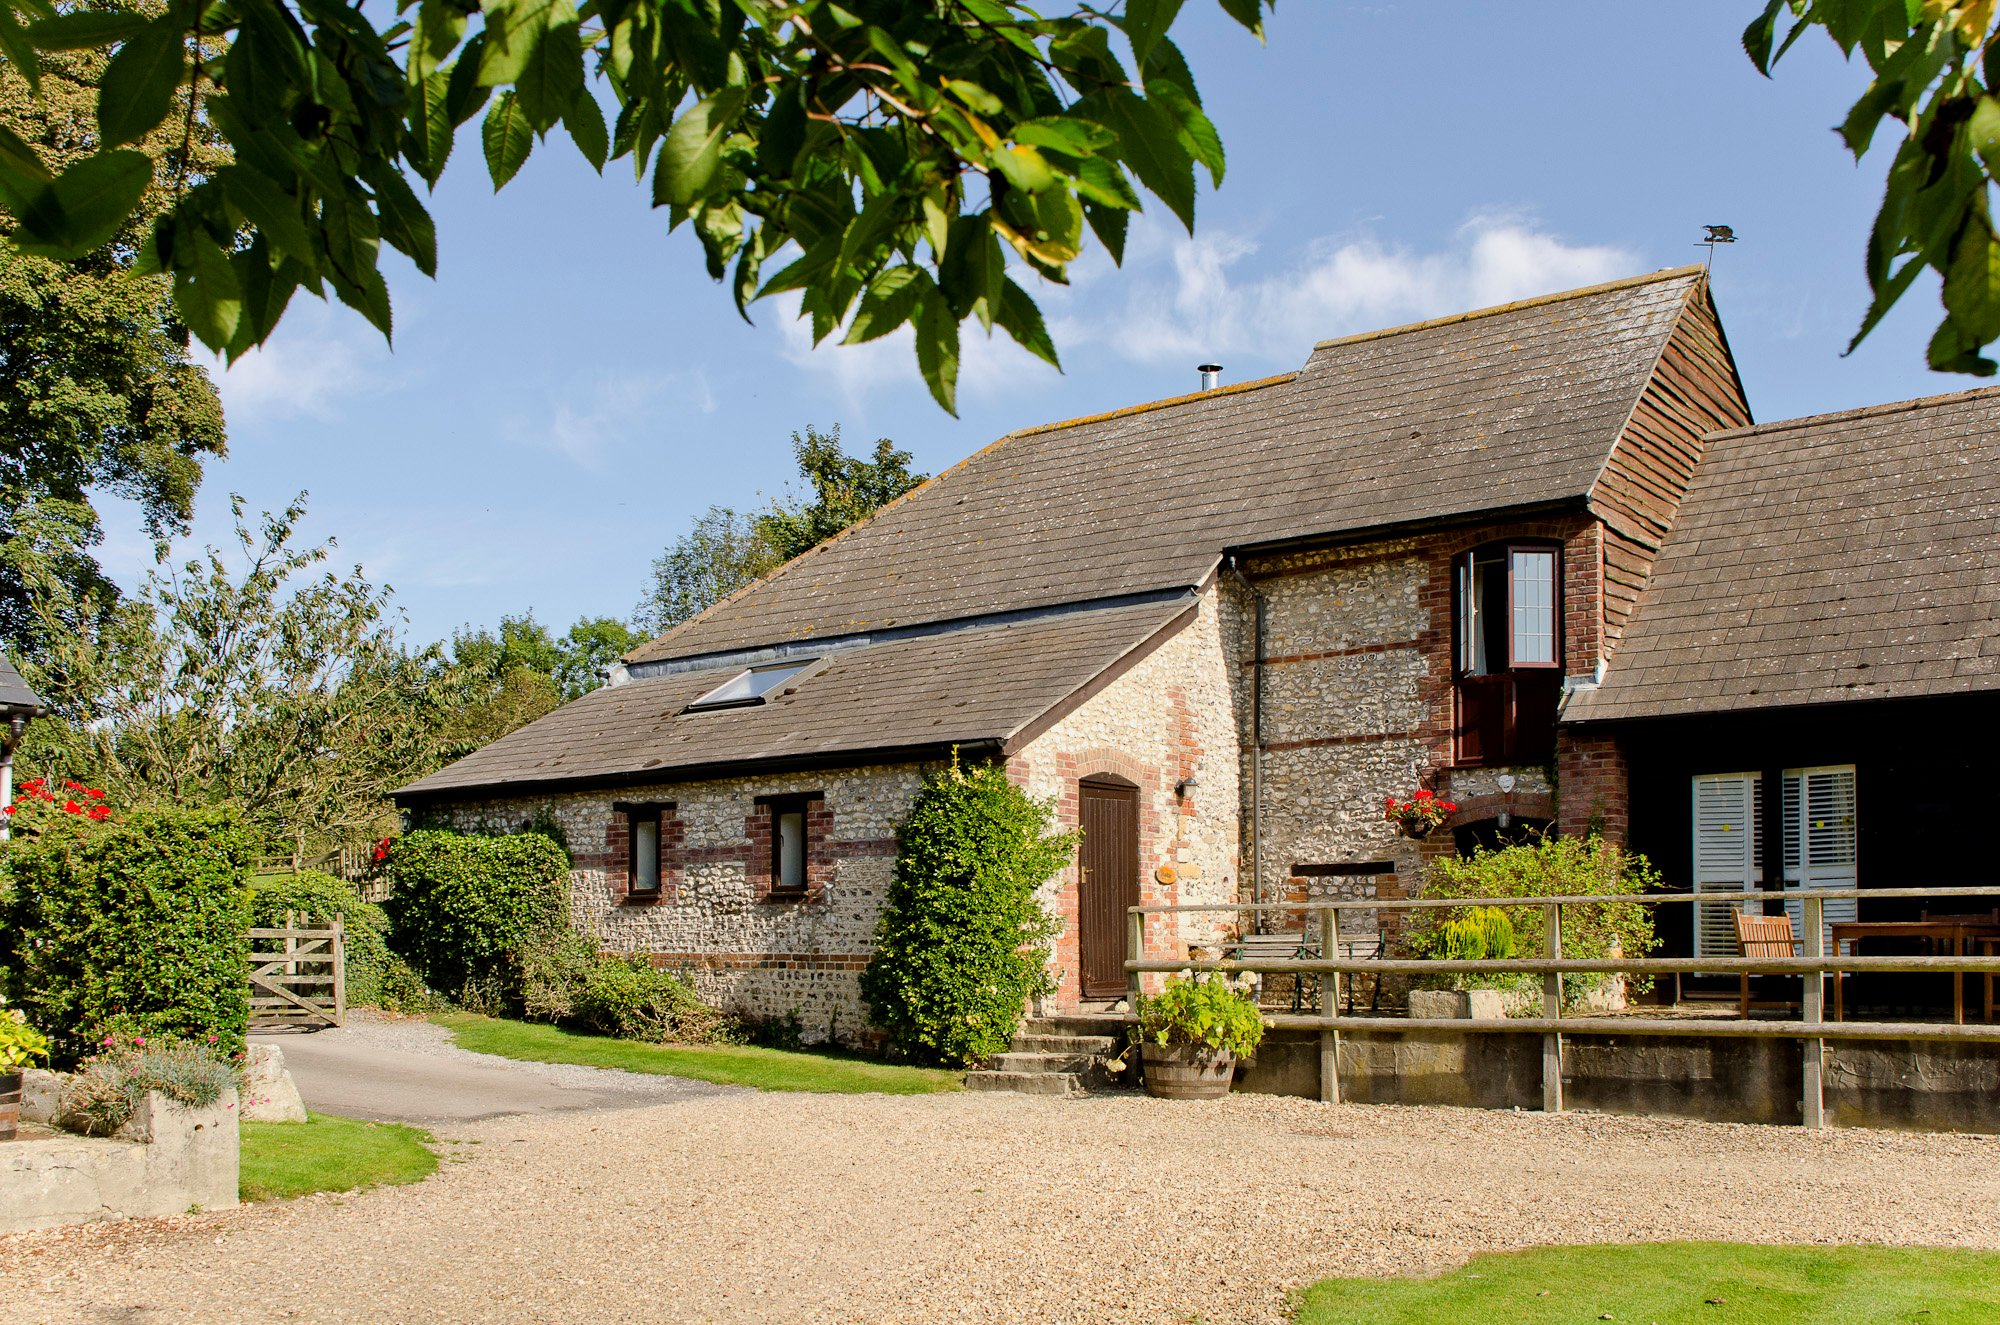 Dorset Self Catering Holidays The Stables Cottage